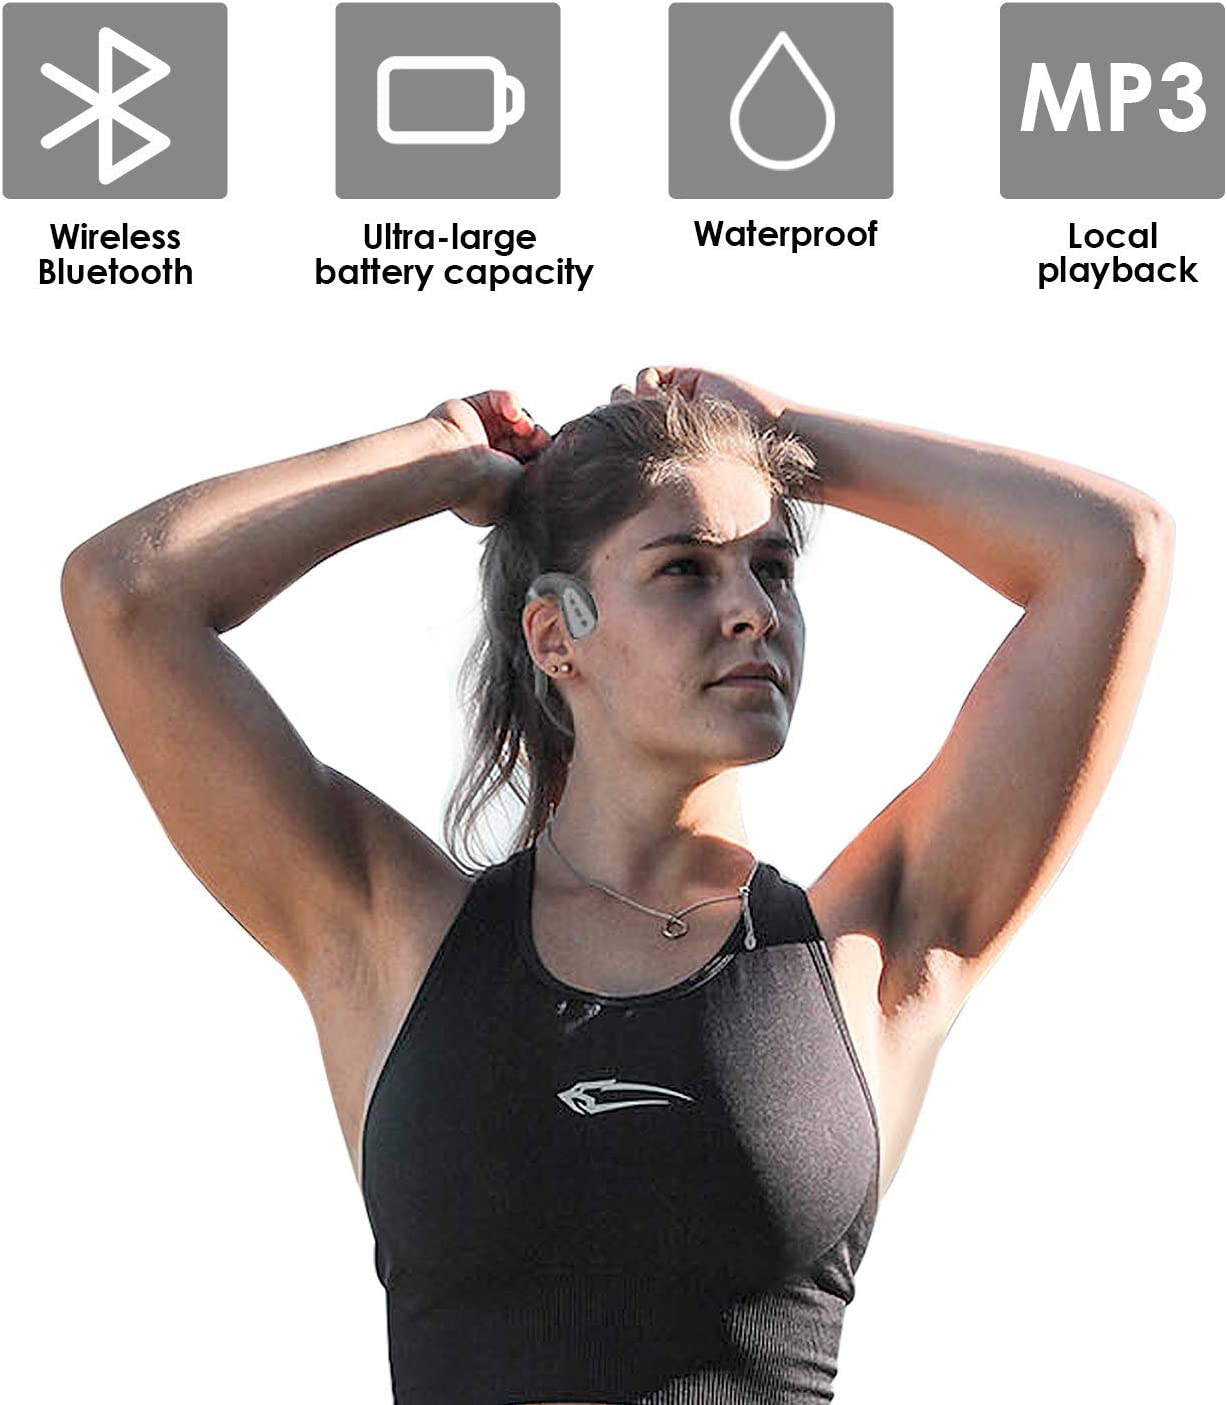 Low Cost inspireLAB Bone Conduction Headphones for Swimming IPX8 Waterproof with 8GB Independently MP3 Player, TWS Sports Headset Mic Sweatproof (Black Grey) Black Red cfLnHzc